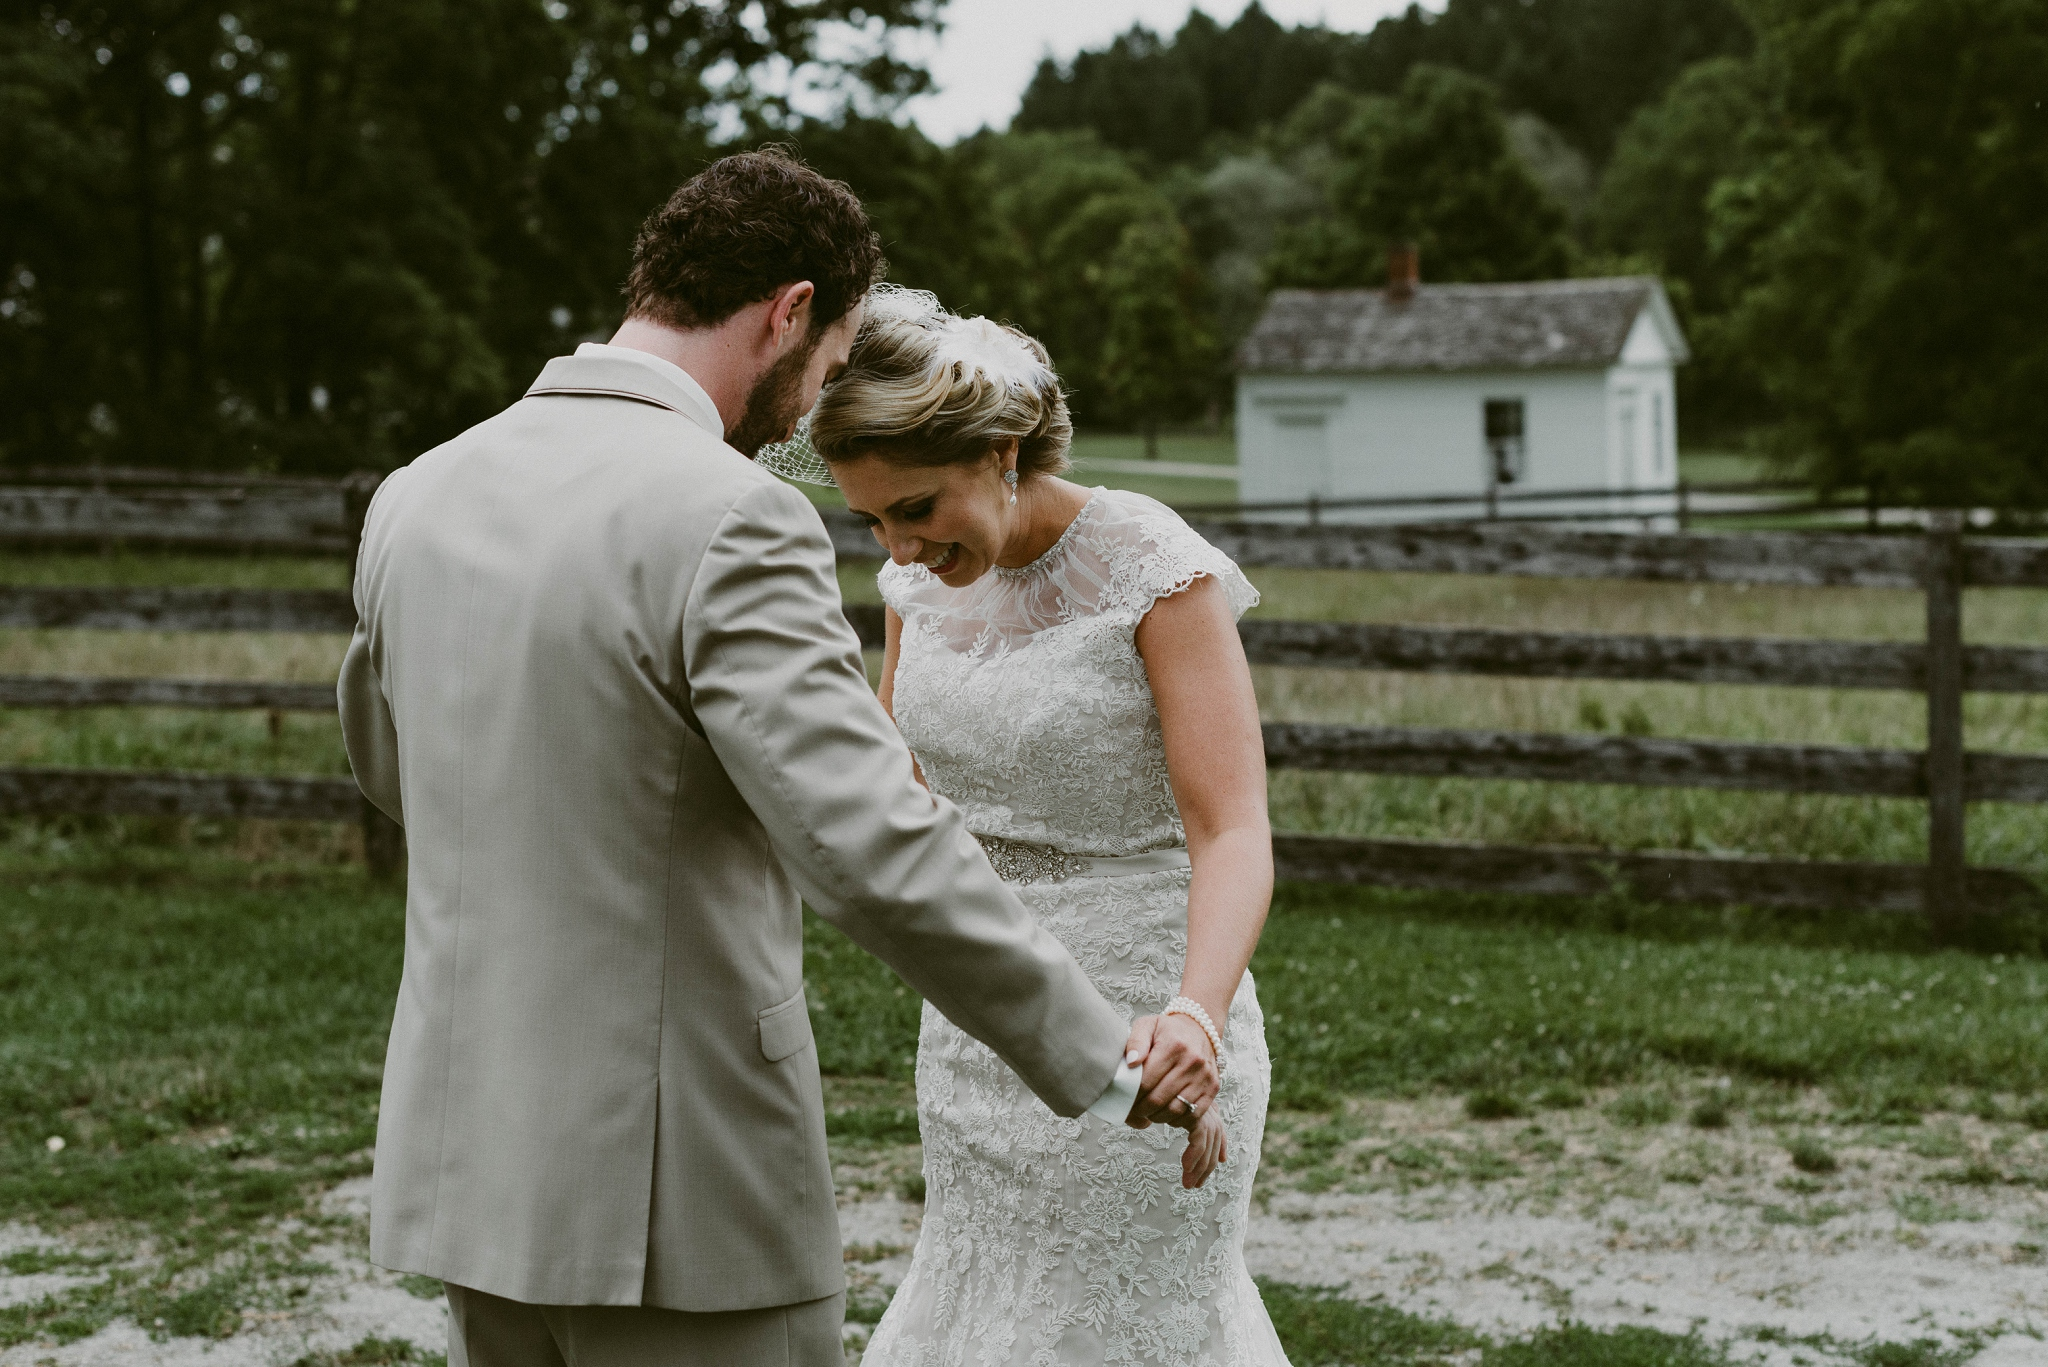 Hines-Hill-Farm-Cuyahoga-Valley-National-Park-Wedding_Emi+Andy_MJPHOTO-80.jpg